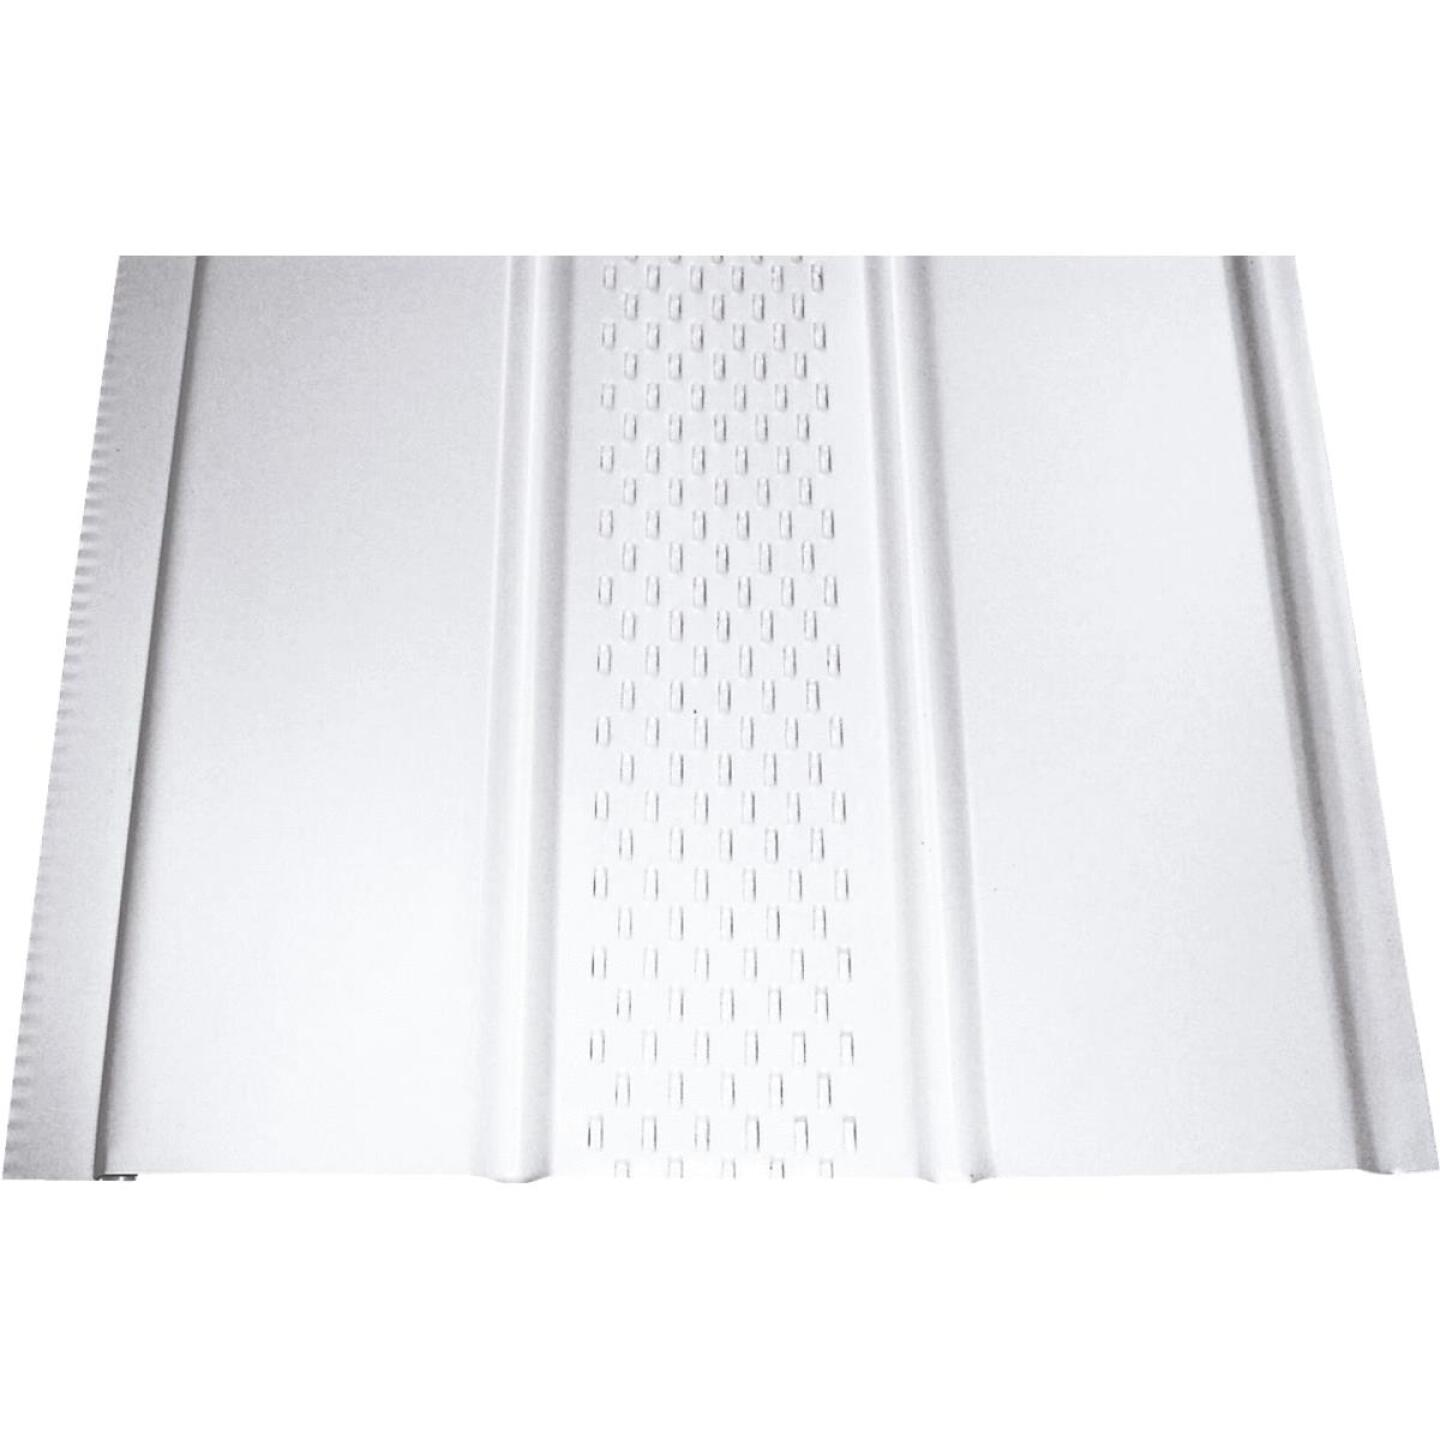 Klauer 12 In. White Center Vented Aluminum Soffit Image 1